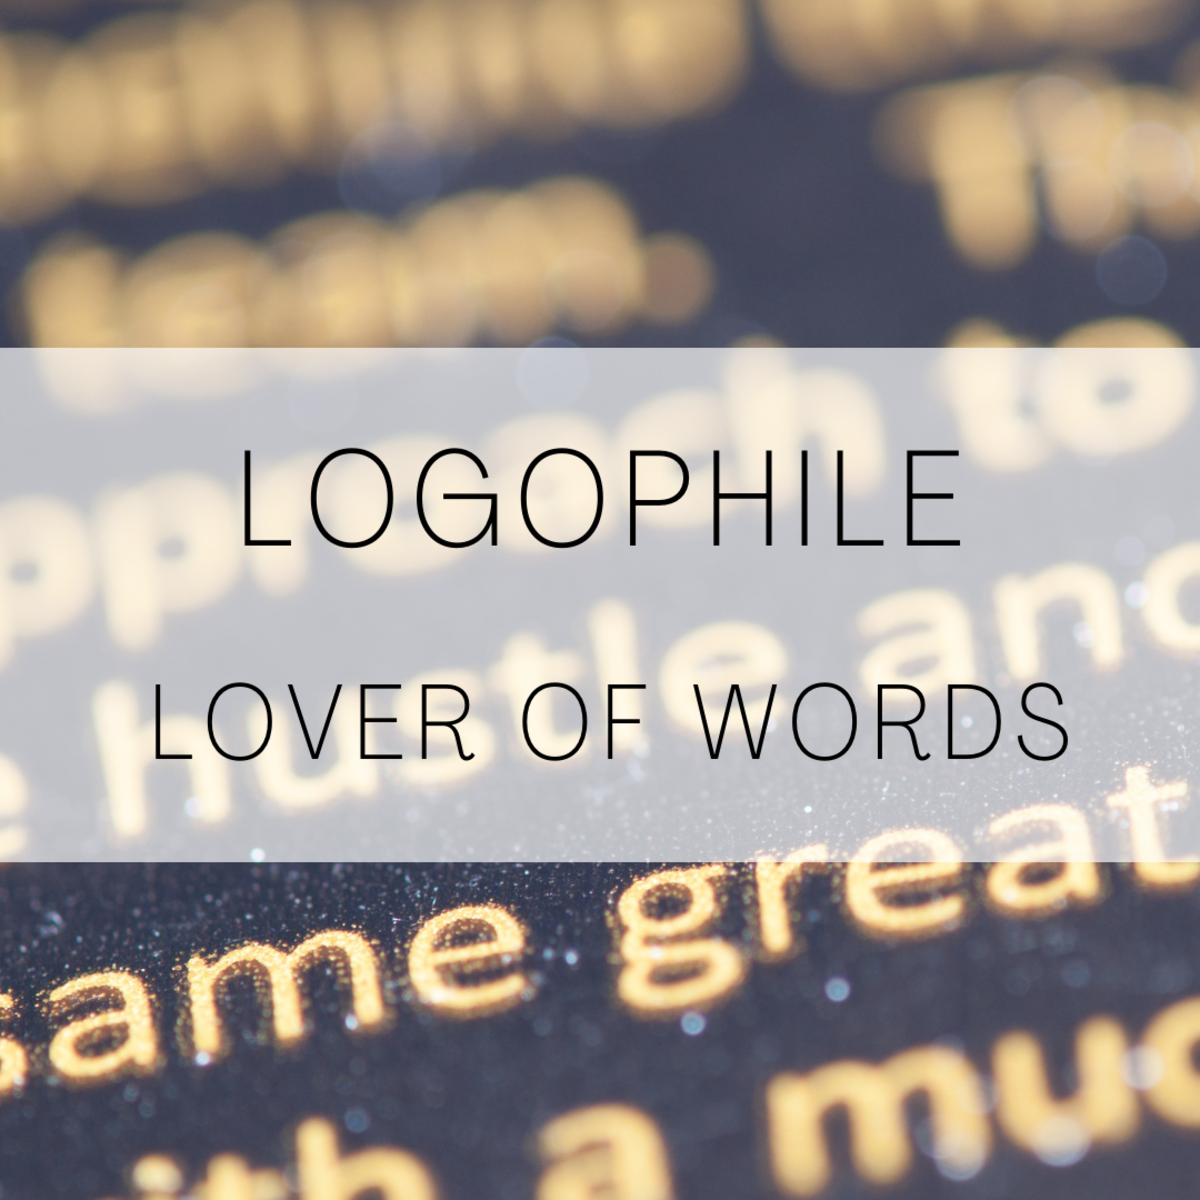 Logophile, a lover of words